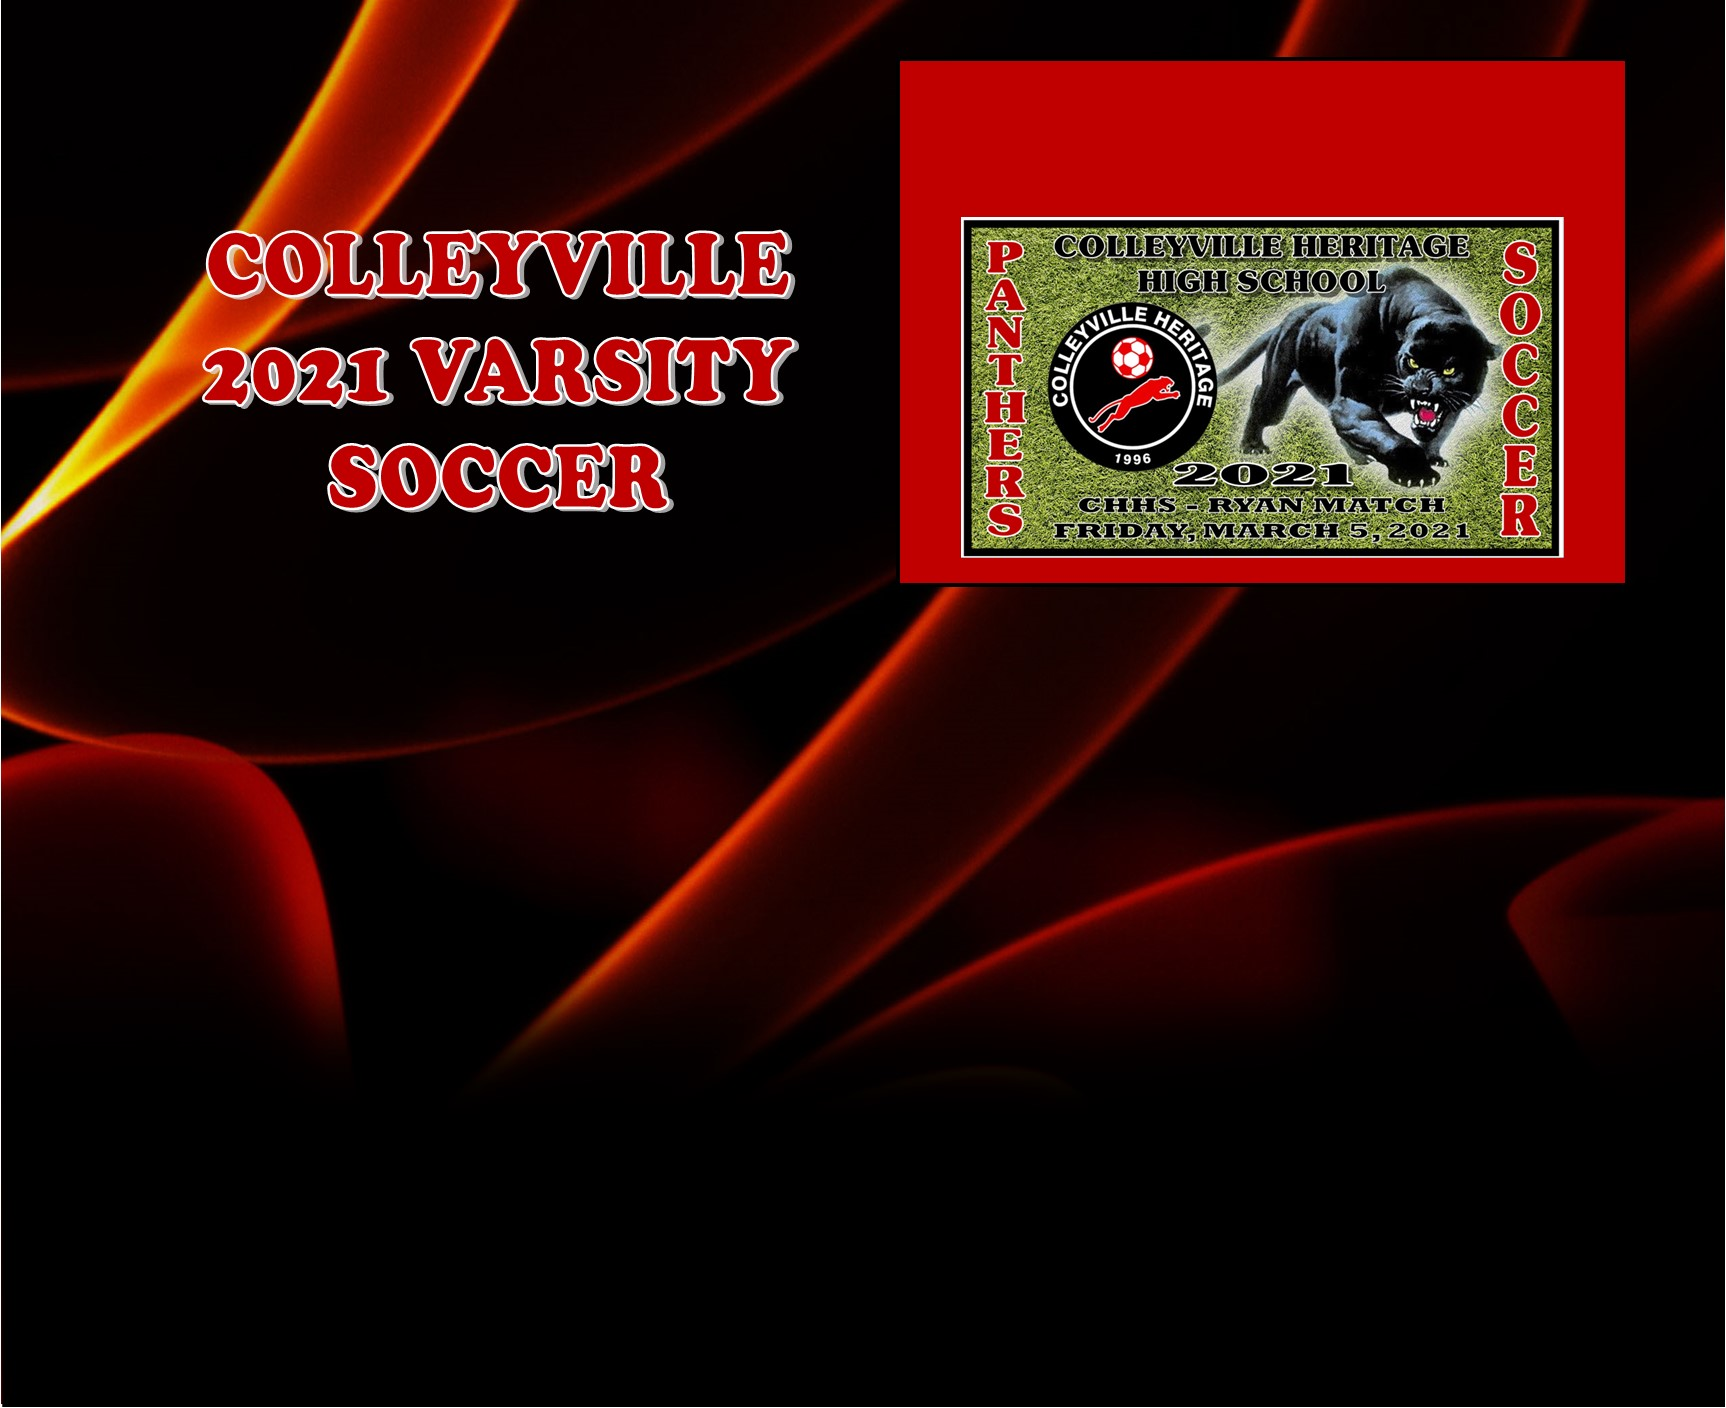 GCISD Soccer: Colleyville Panthers Overpower Ryan Raiders 1-0